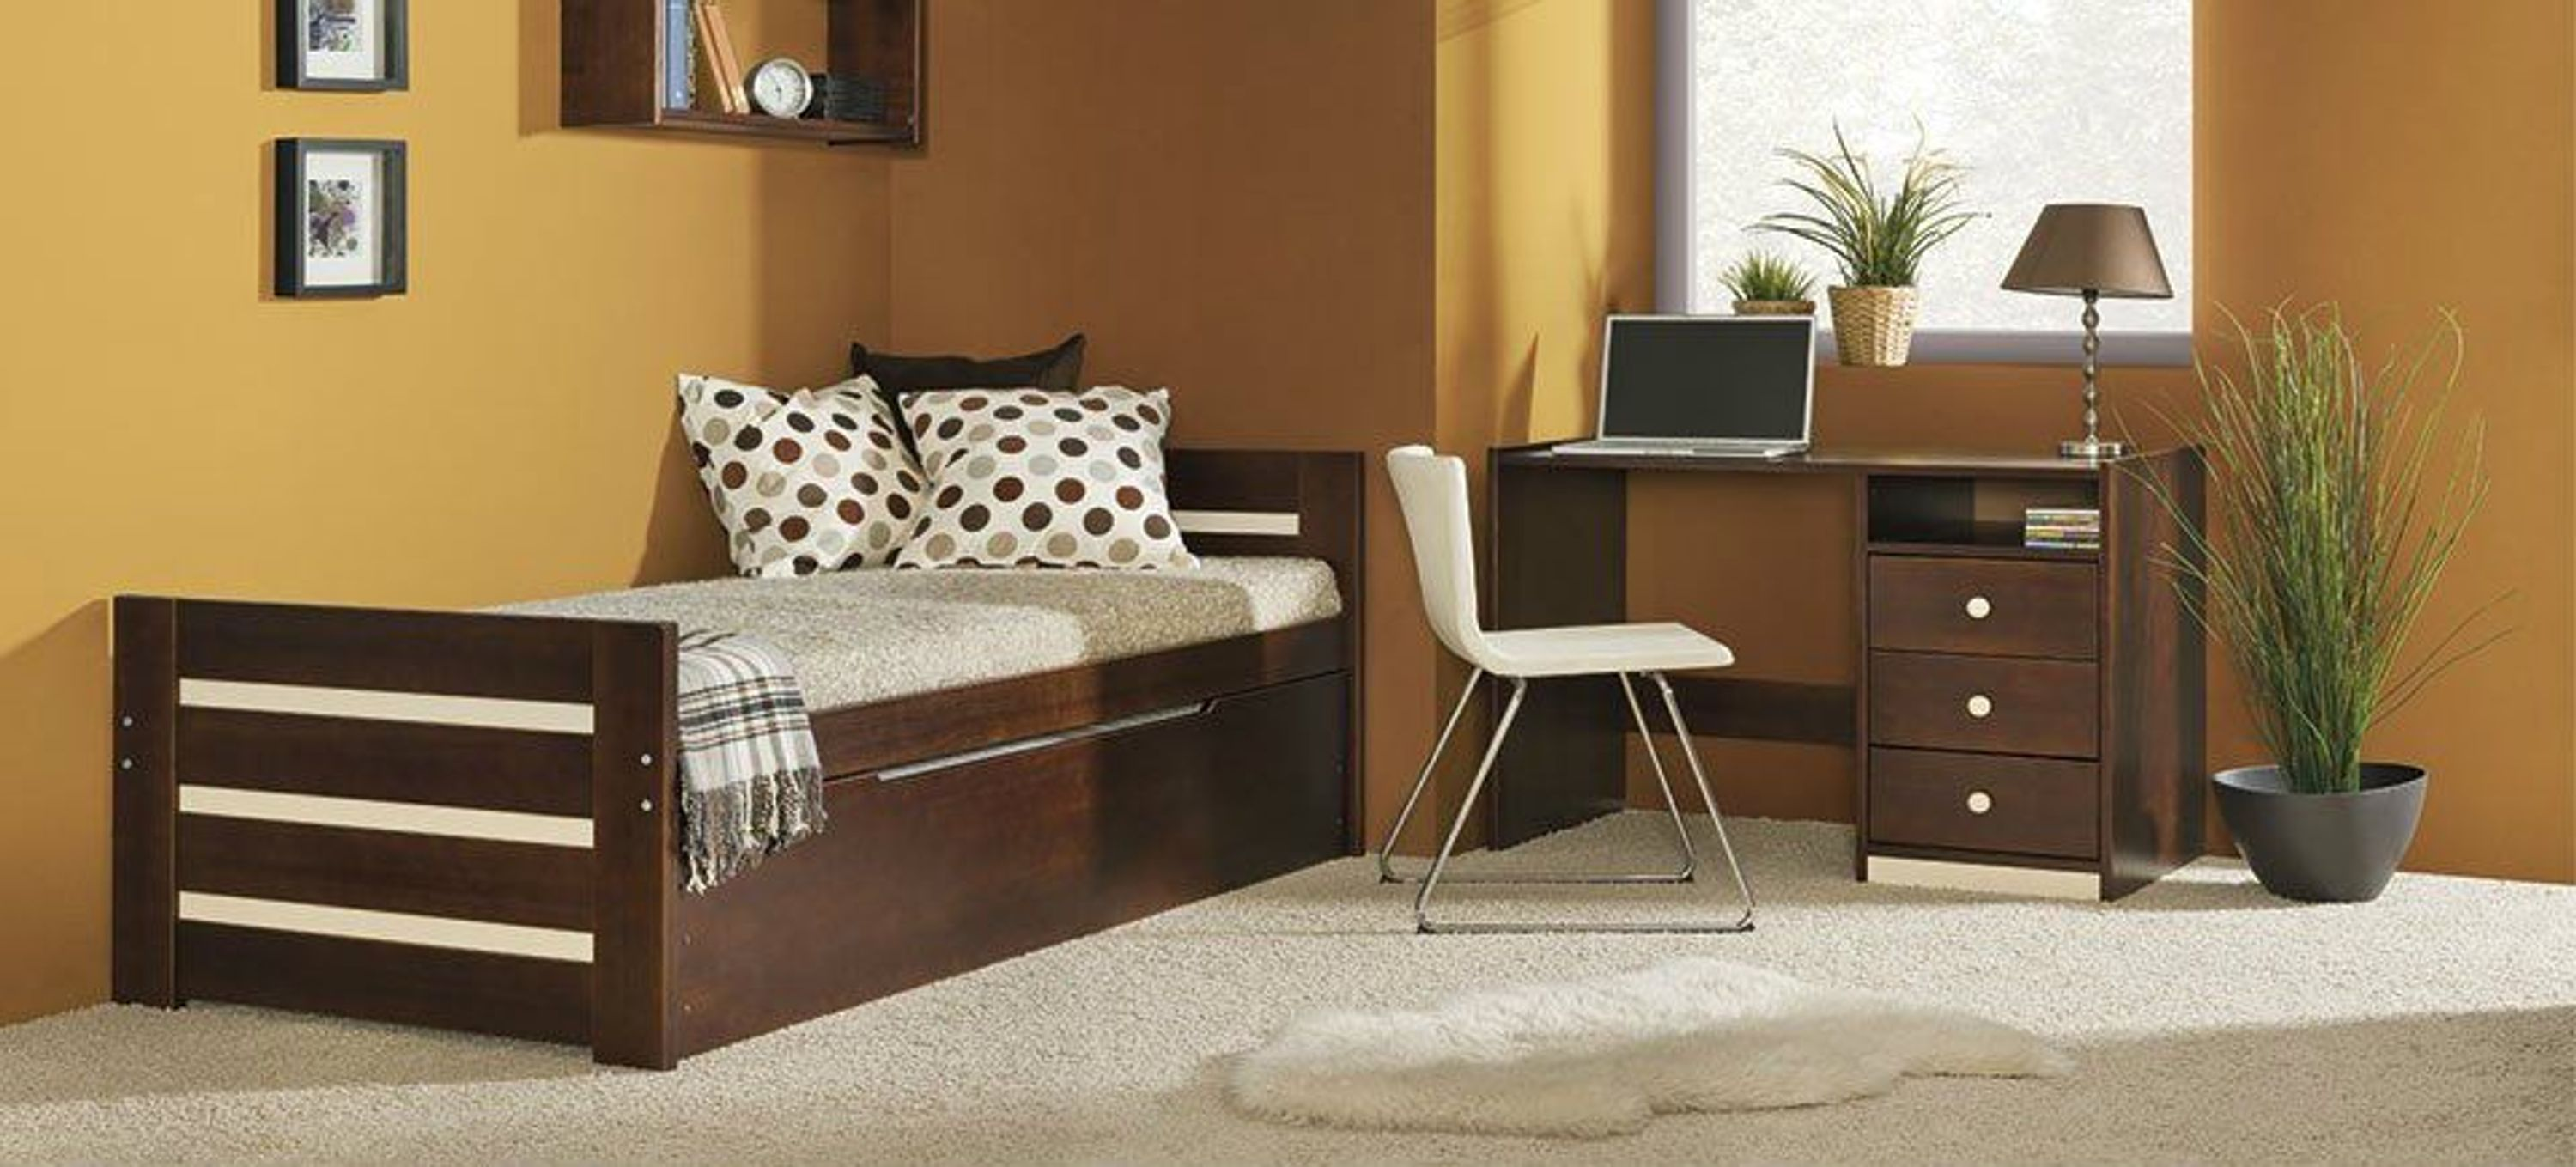 doppelbett aus kieferholz modell diego inkl lattenrost massivholz mit 2 matratzen kaufen bei. Black Bedroom Furniture Sets. Home Design Ideas